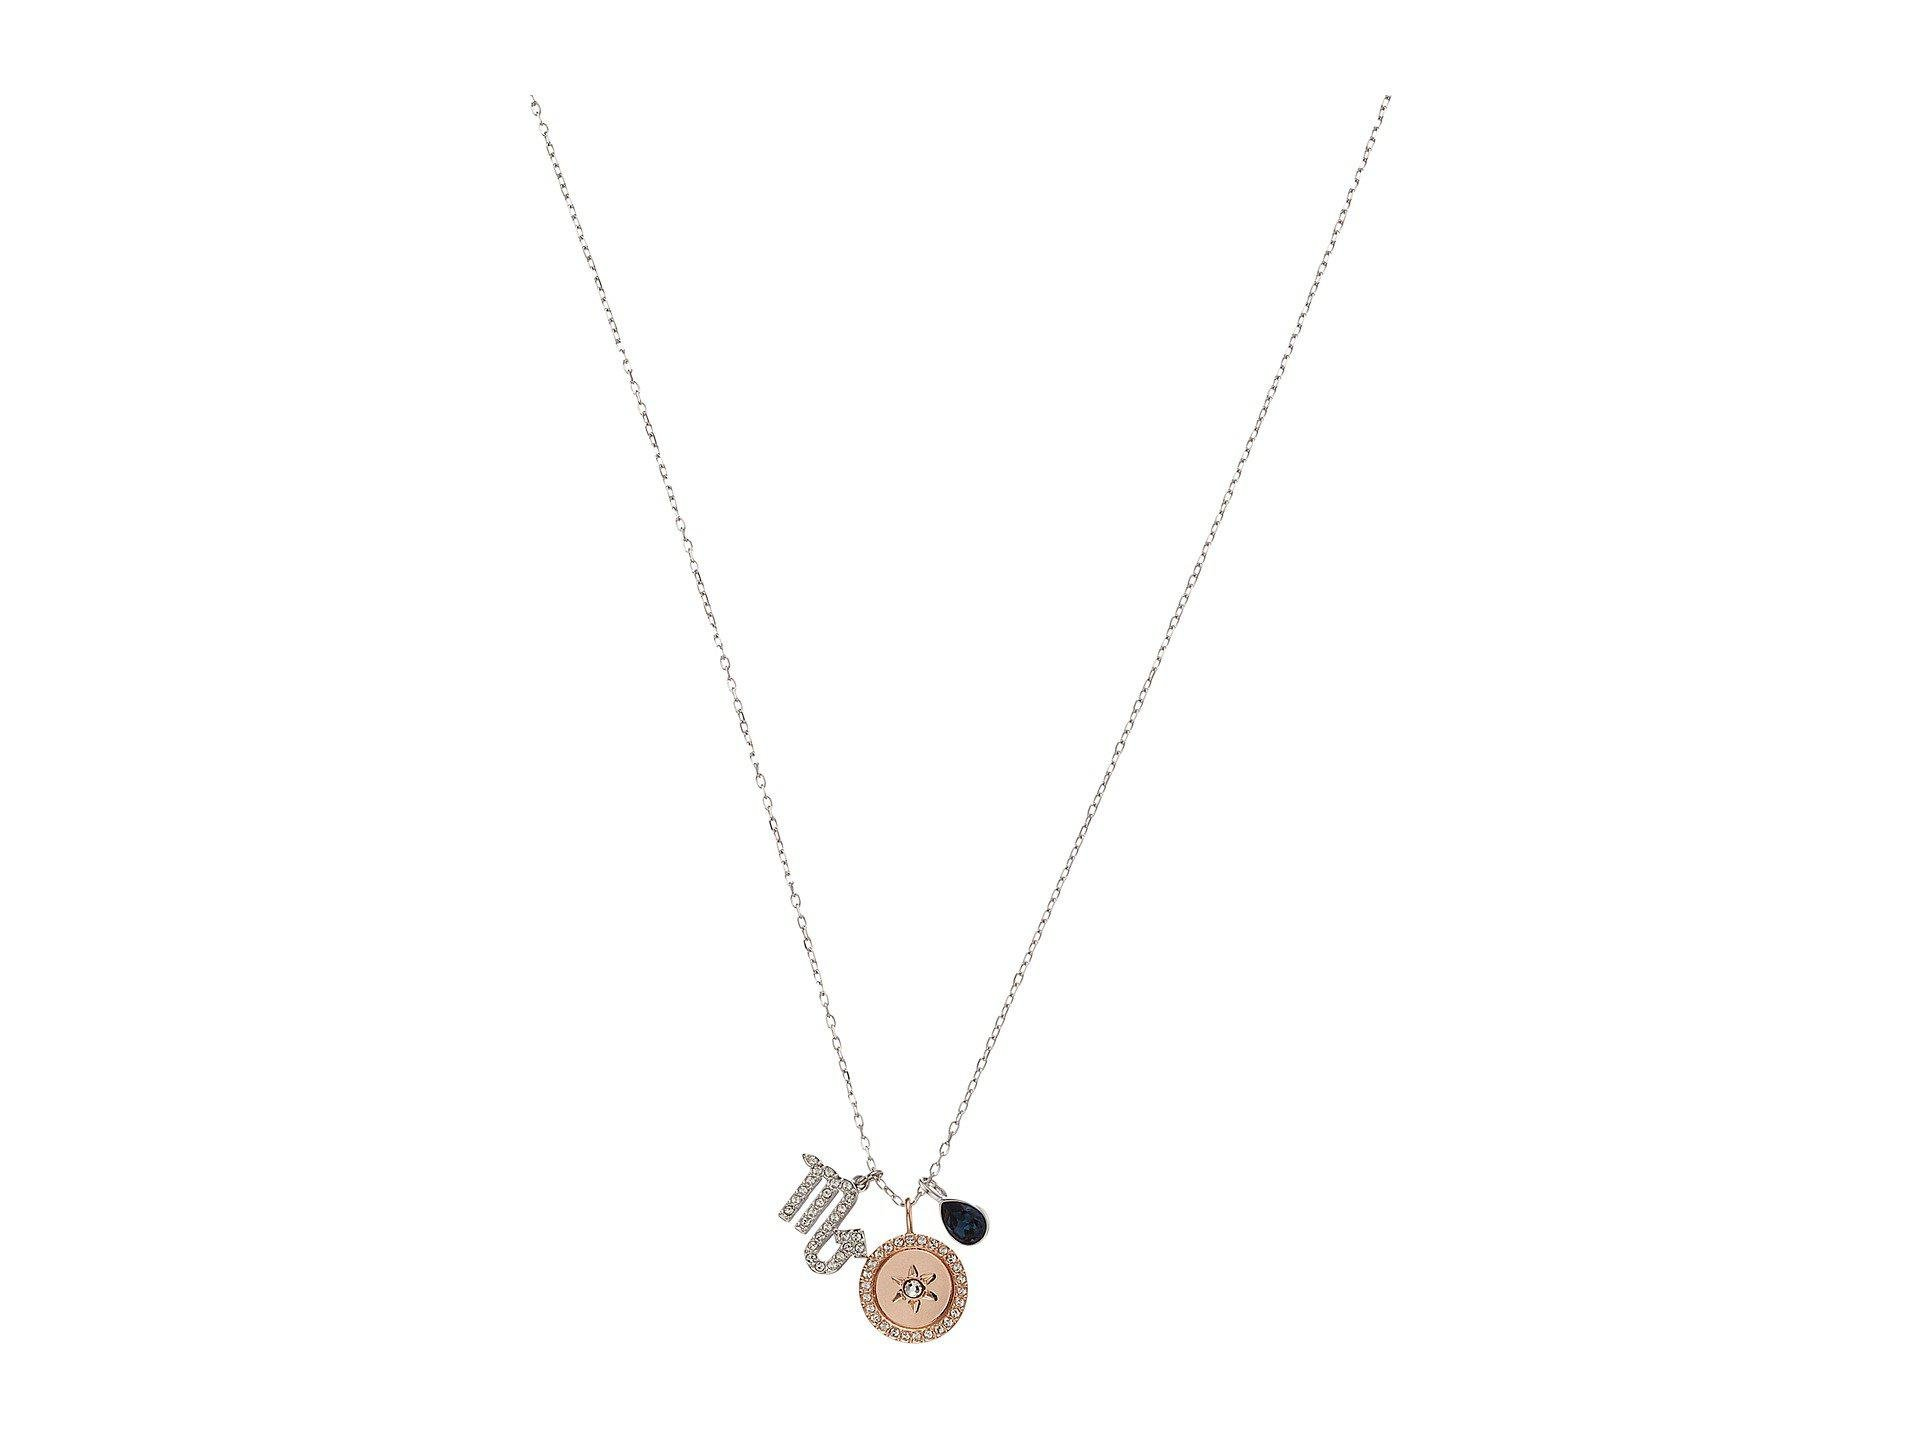 9c068024e Swarovski Zodiac Pendant Scorpio Necklace (teal) Necklace in ...